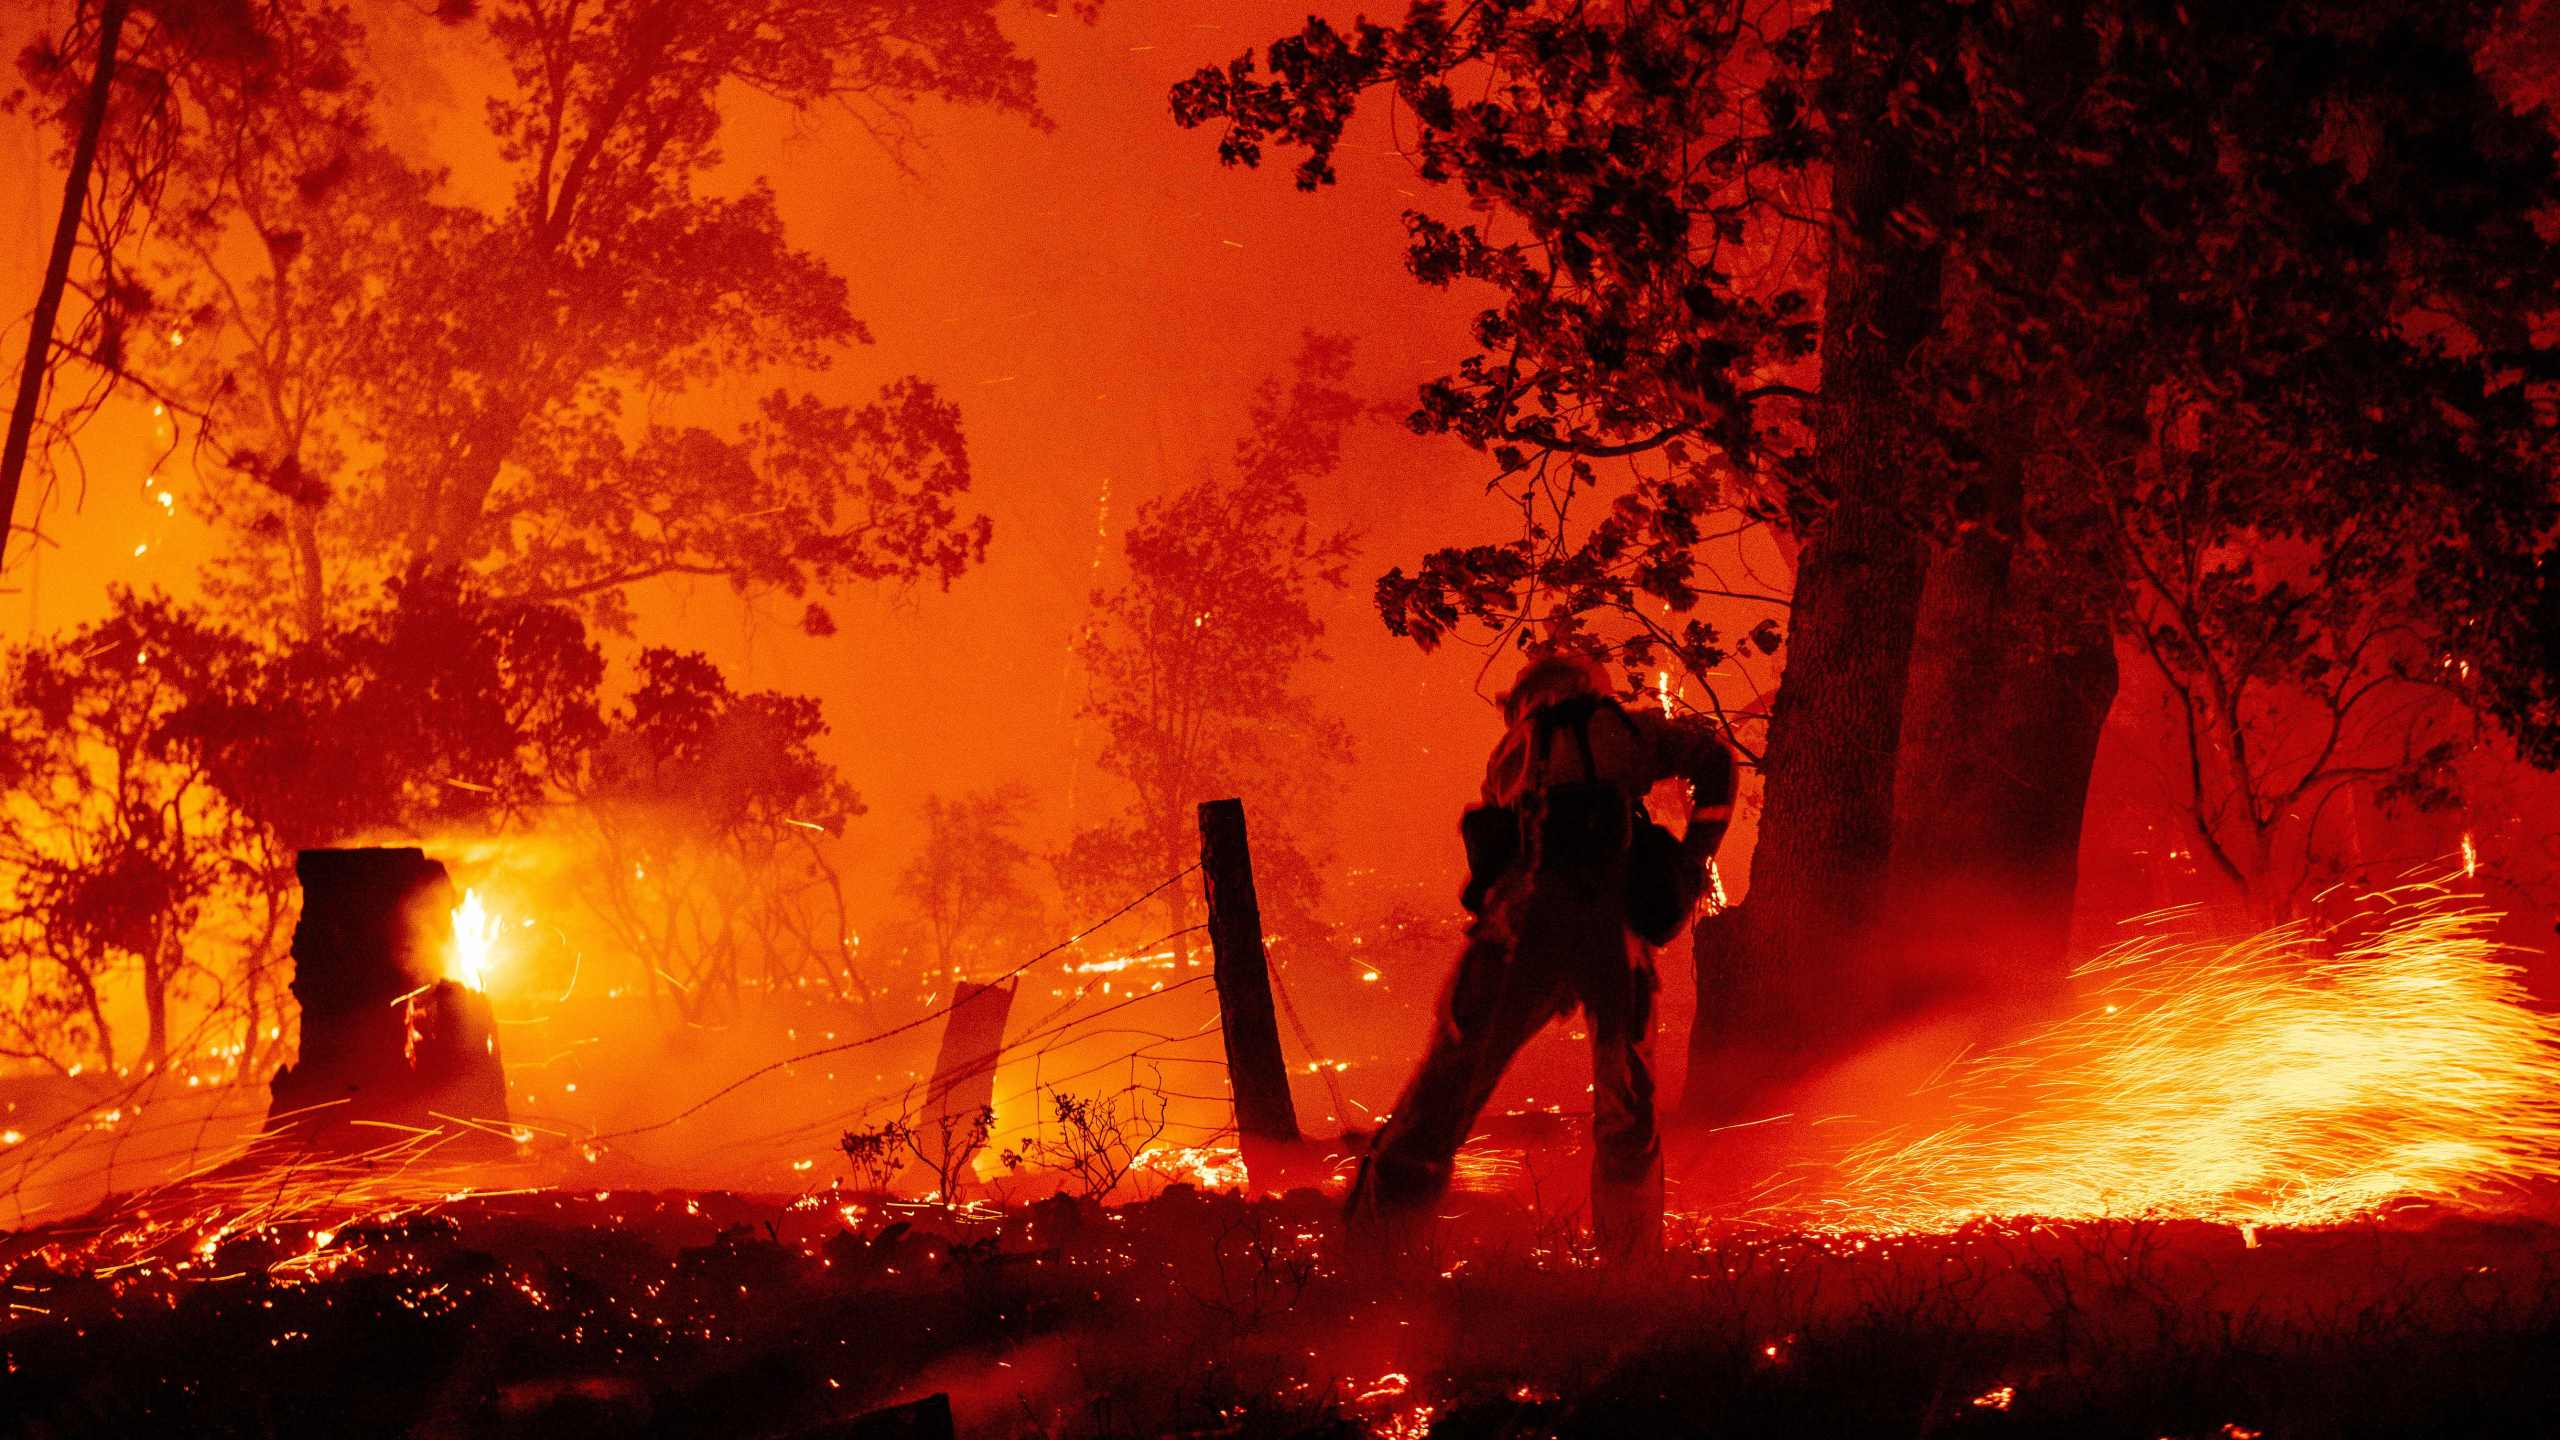 A firefighter works the line as flames push towards homes during the Creek fire in the Cascadel Woods area of unincorporated Madera County, California on September 7, 2020. (Photo by JOSH EDELSON/AFP via Getty Images)